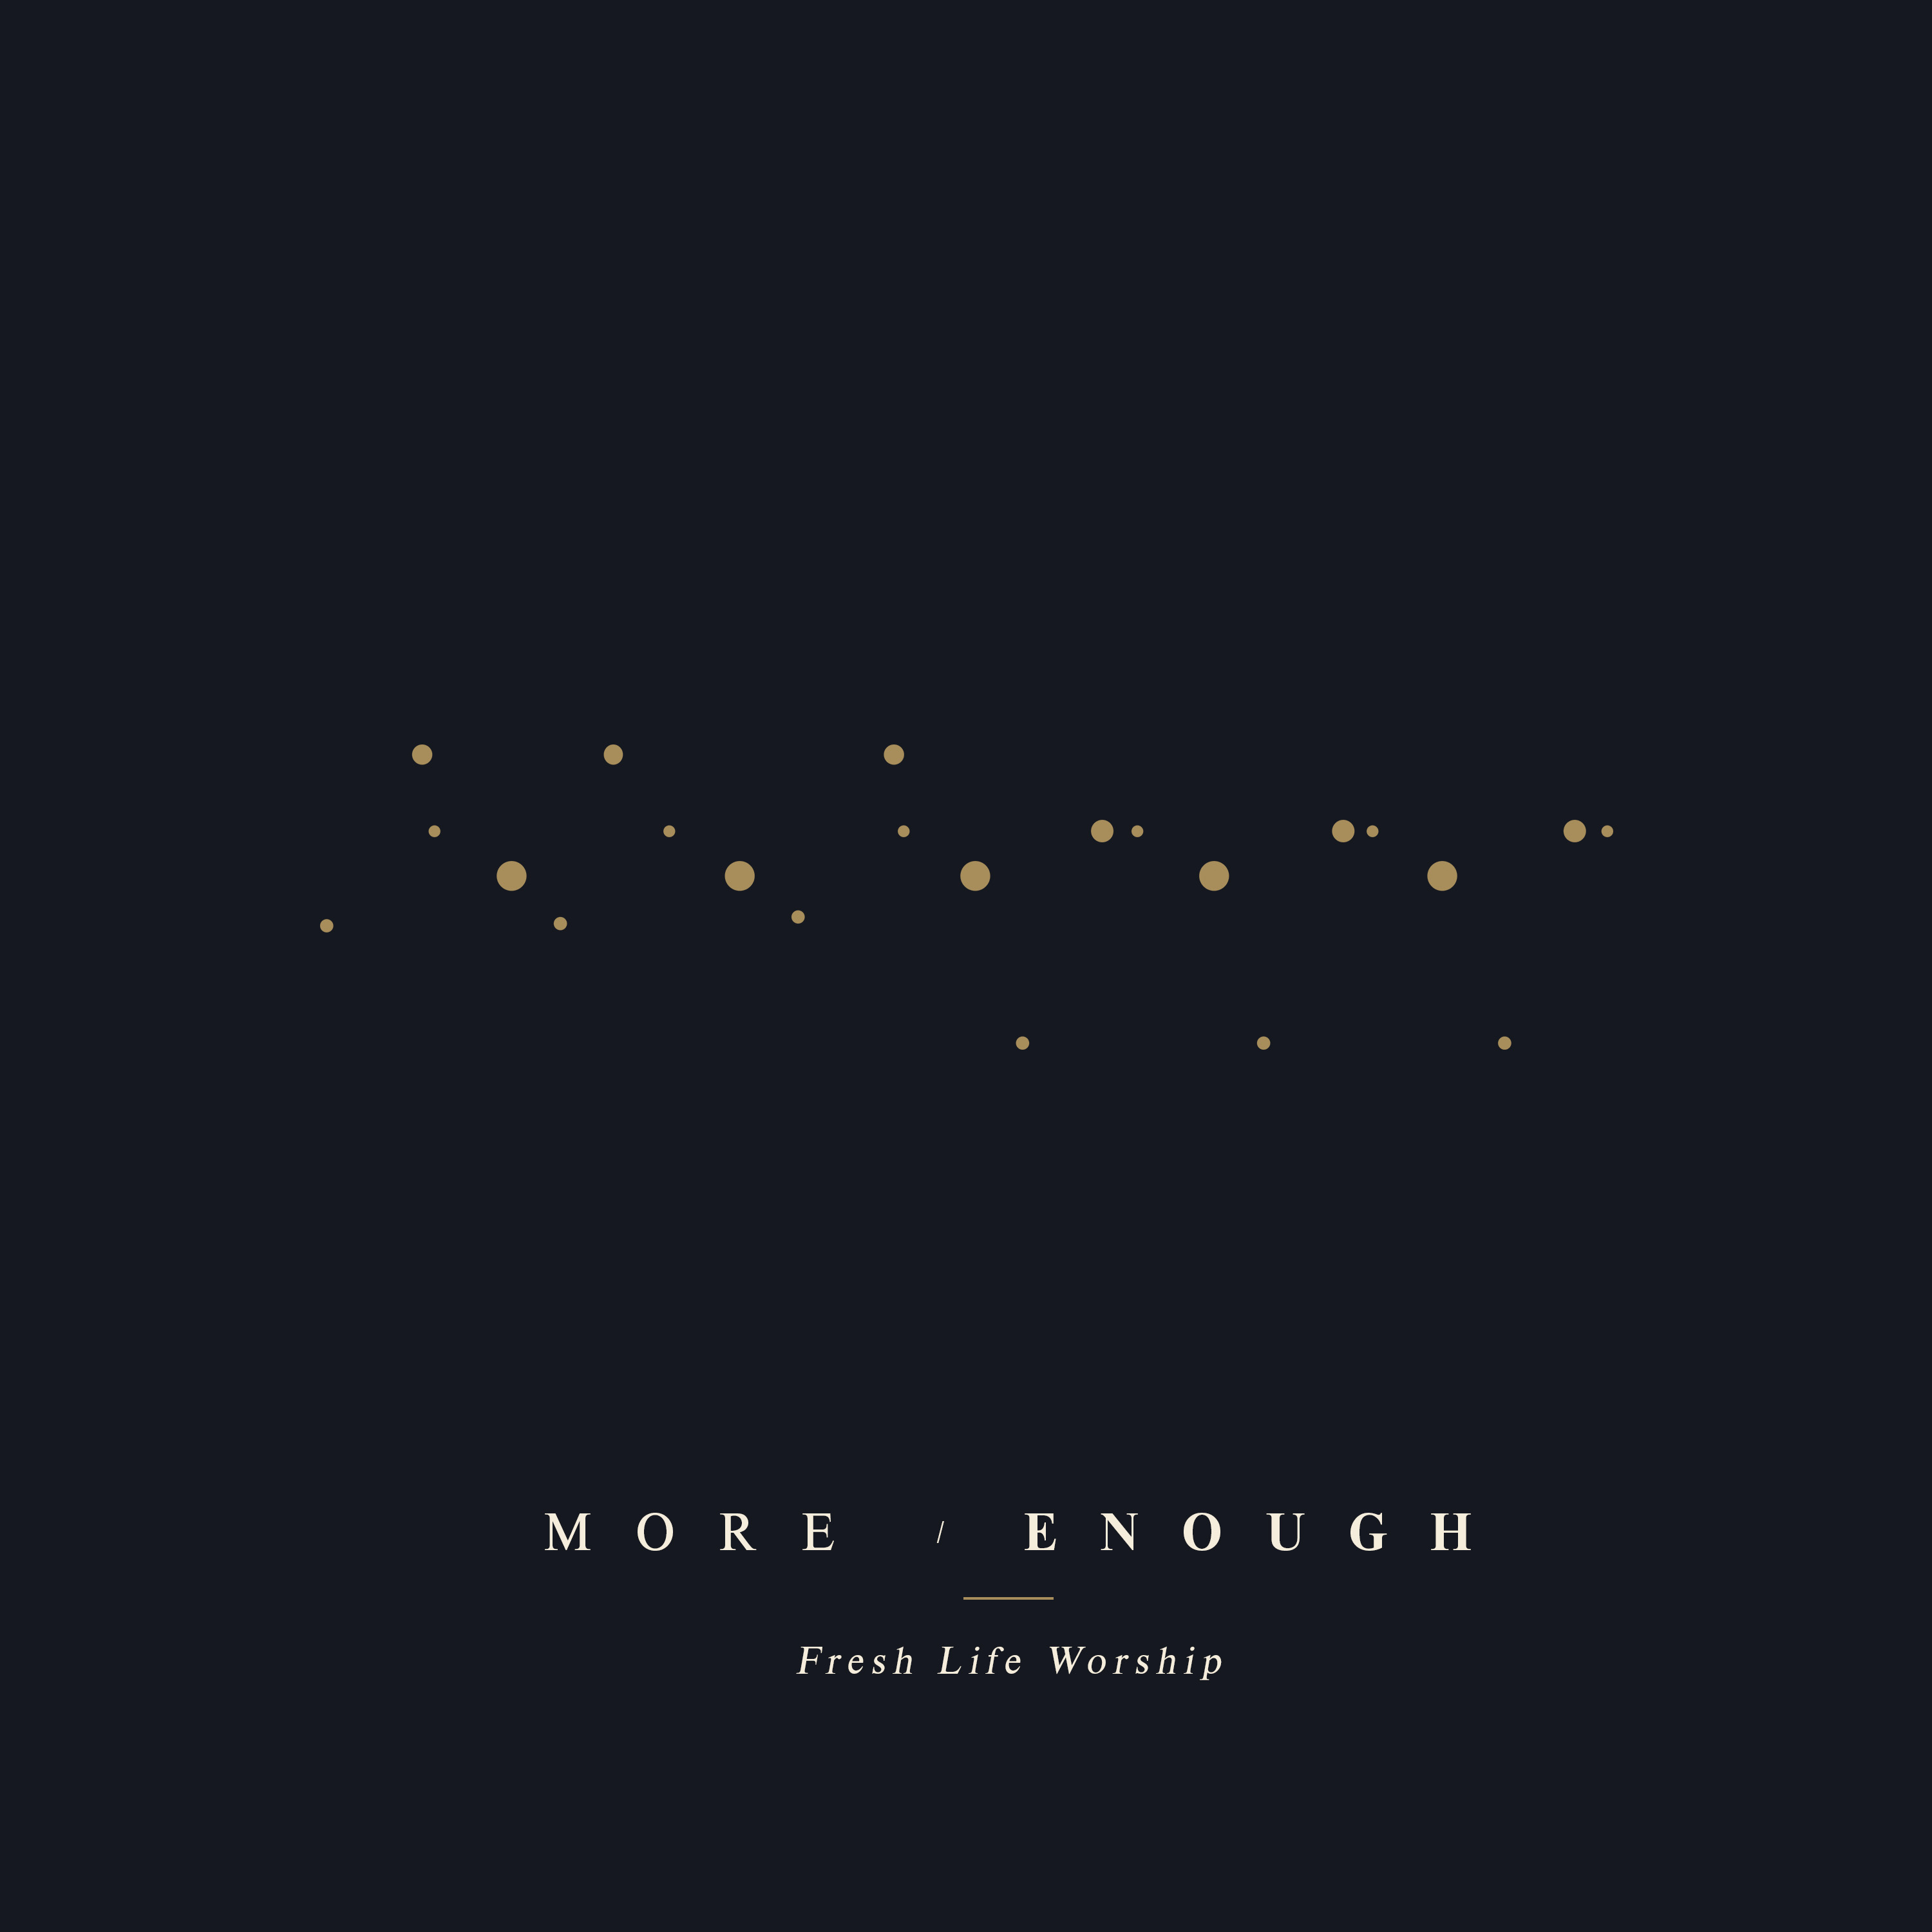 More/Enough